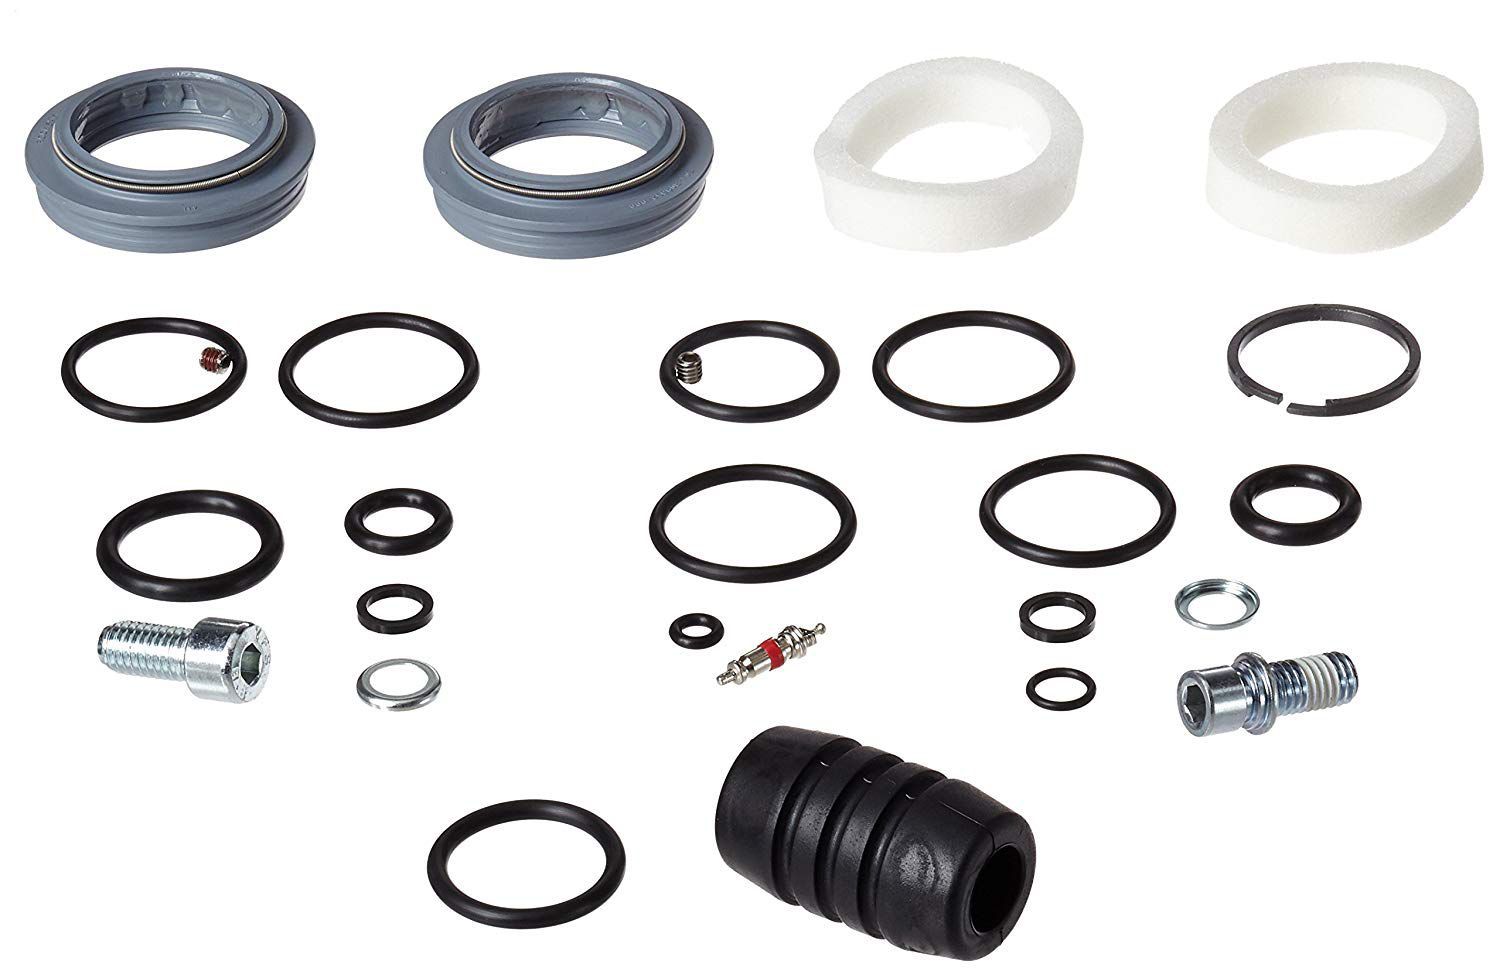 Kit Reparo Retentores Rock Shox Recon Gold Full Service - 11.4018.016.000